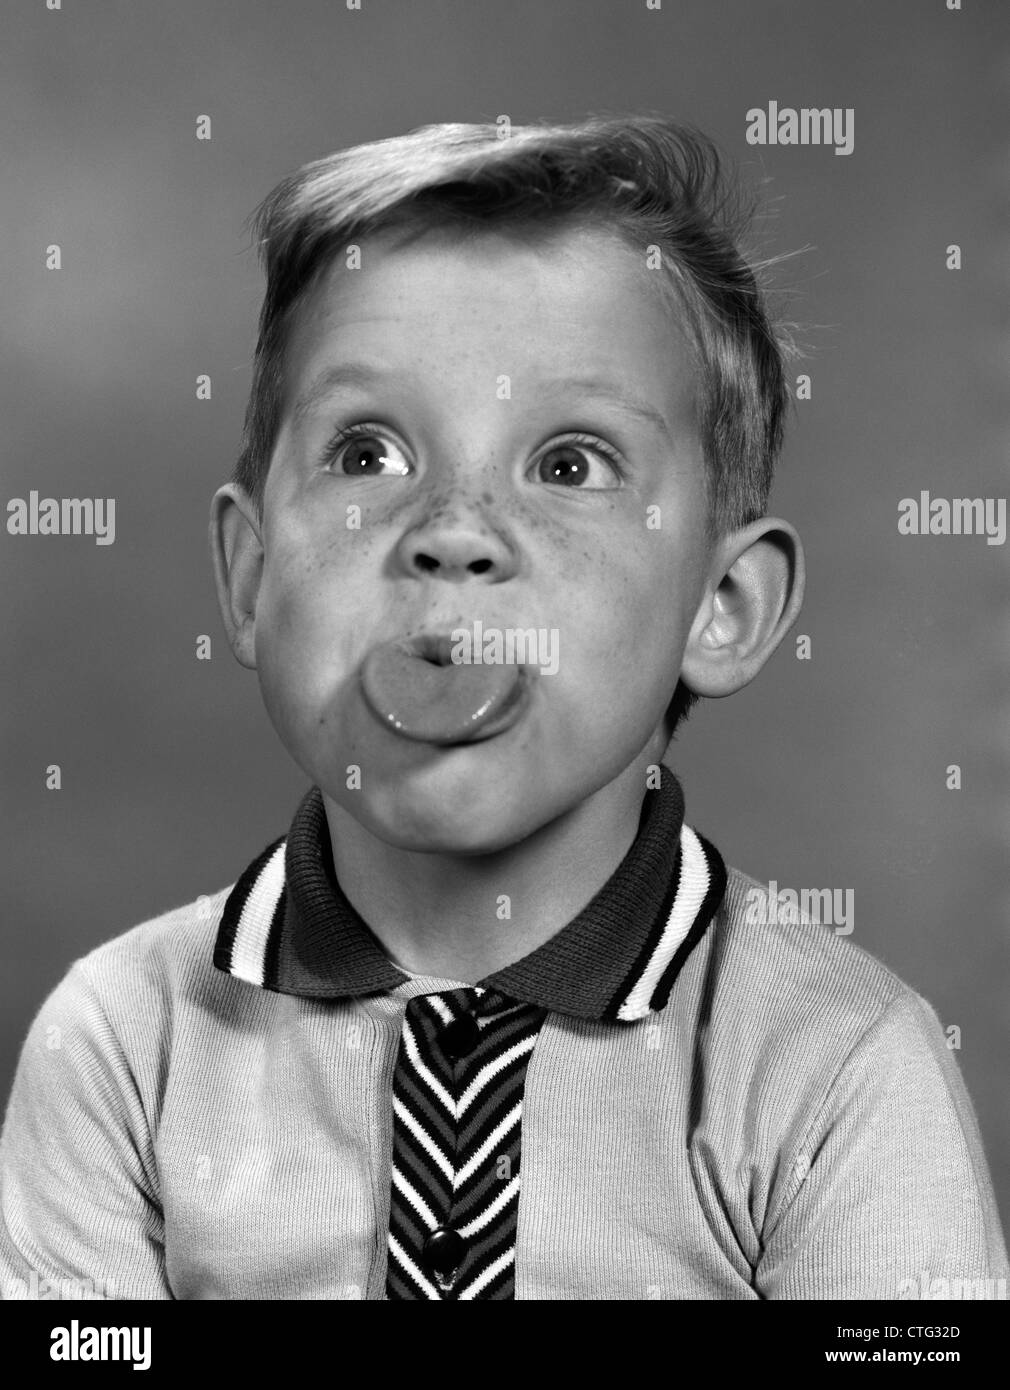 1960s Portrait Boy With Blond Hair Amp Freckles Sticking